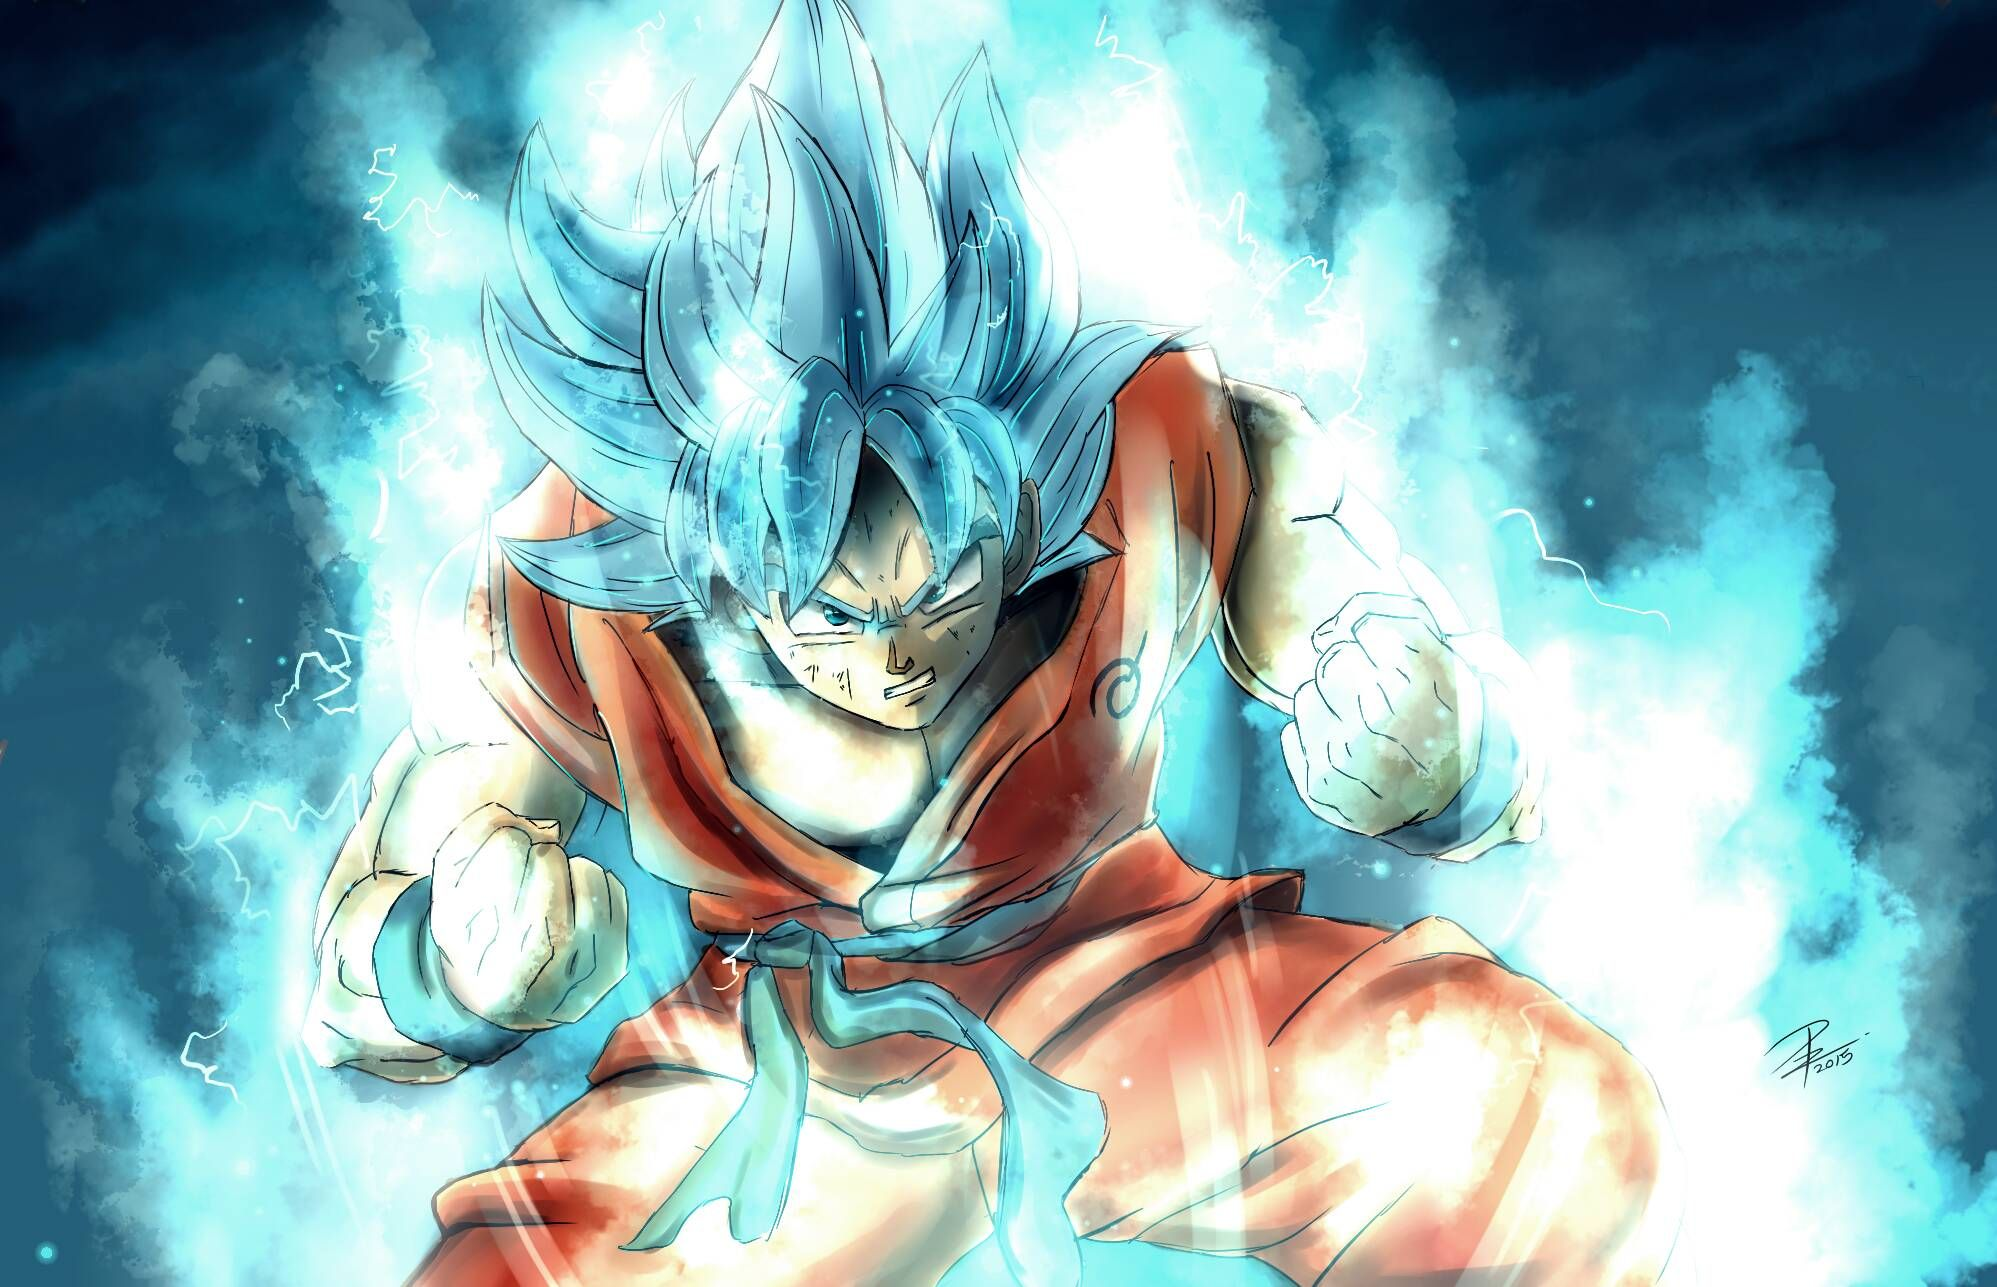 Google chrome themes dragon ball z - Here You Can Find Free Hd Wallpapers Up To Ultra Hd Resolutions This Is The Best Source Of High Resolution Backgrounds For All Devices 411 Dragon Ball